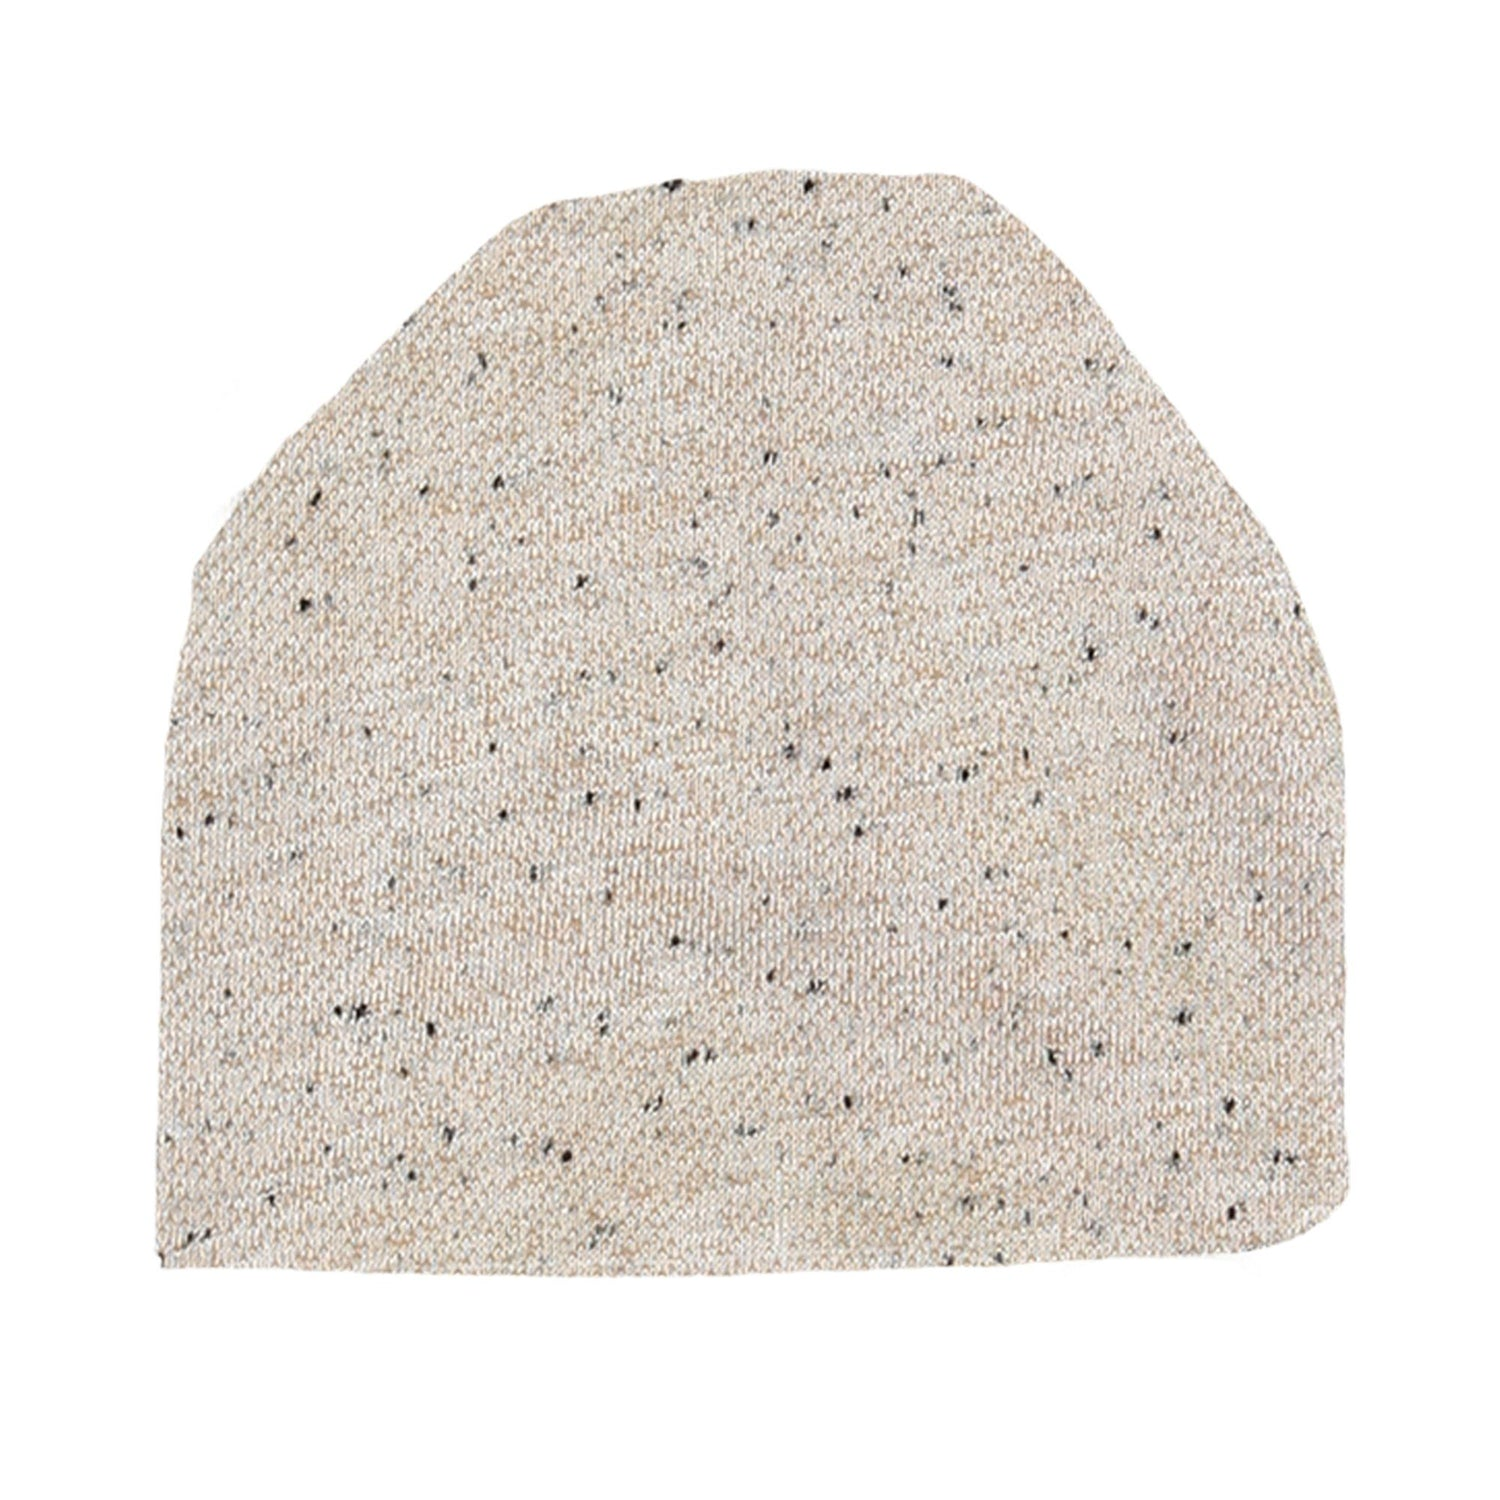 Reverse French Beanie Maniere Accessories Stone 3 Month